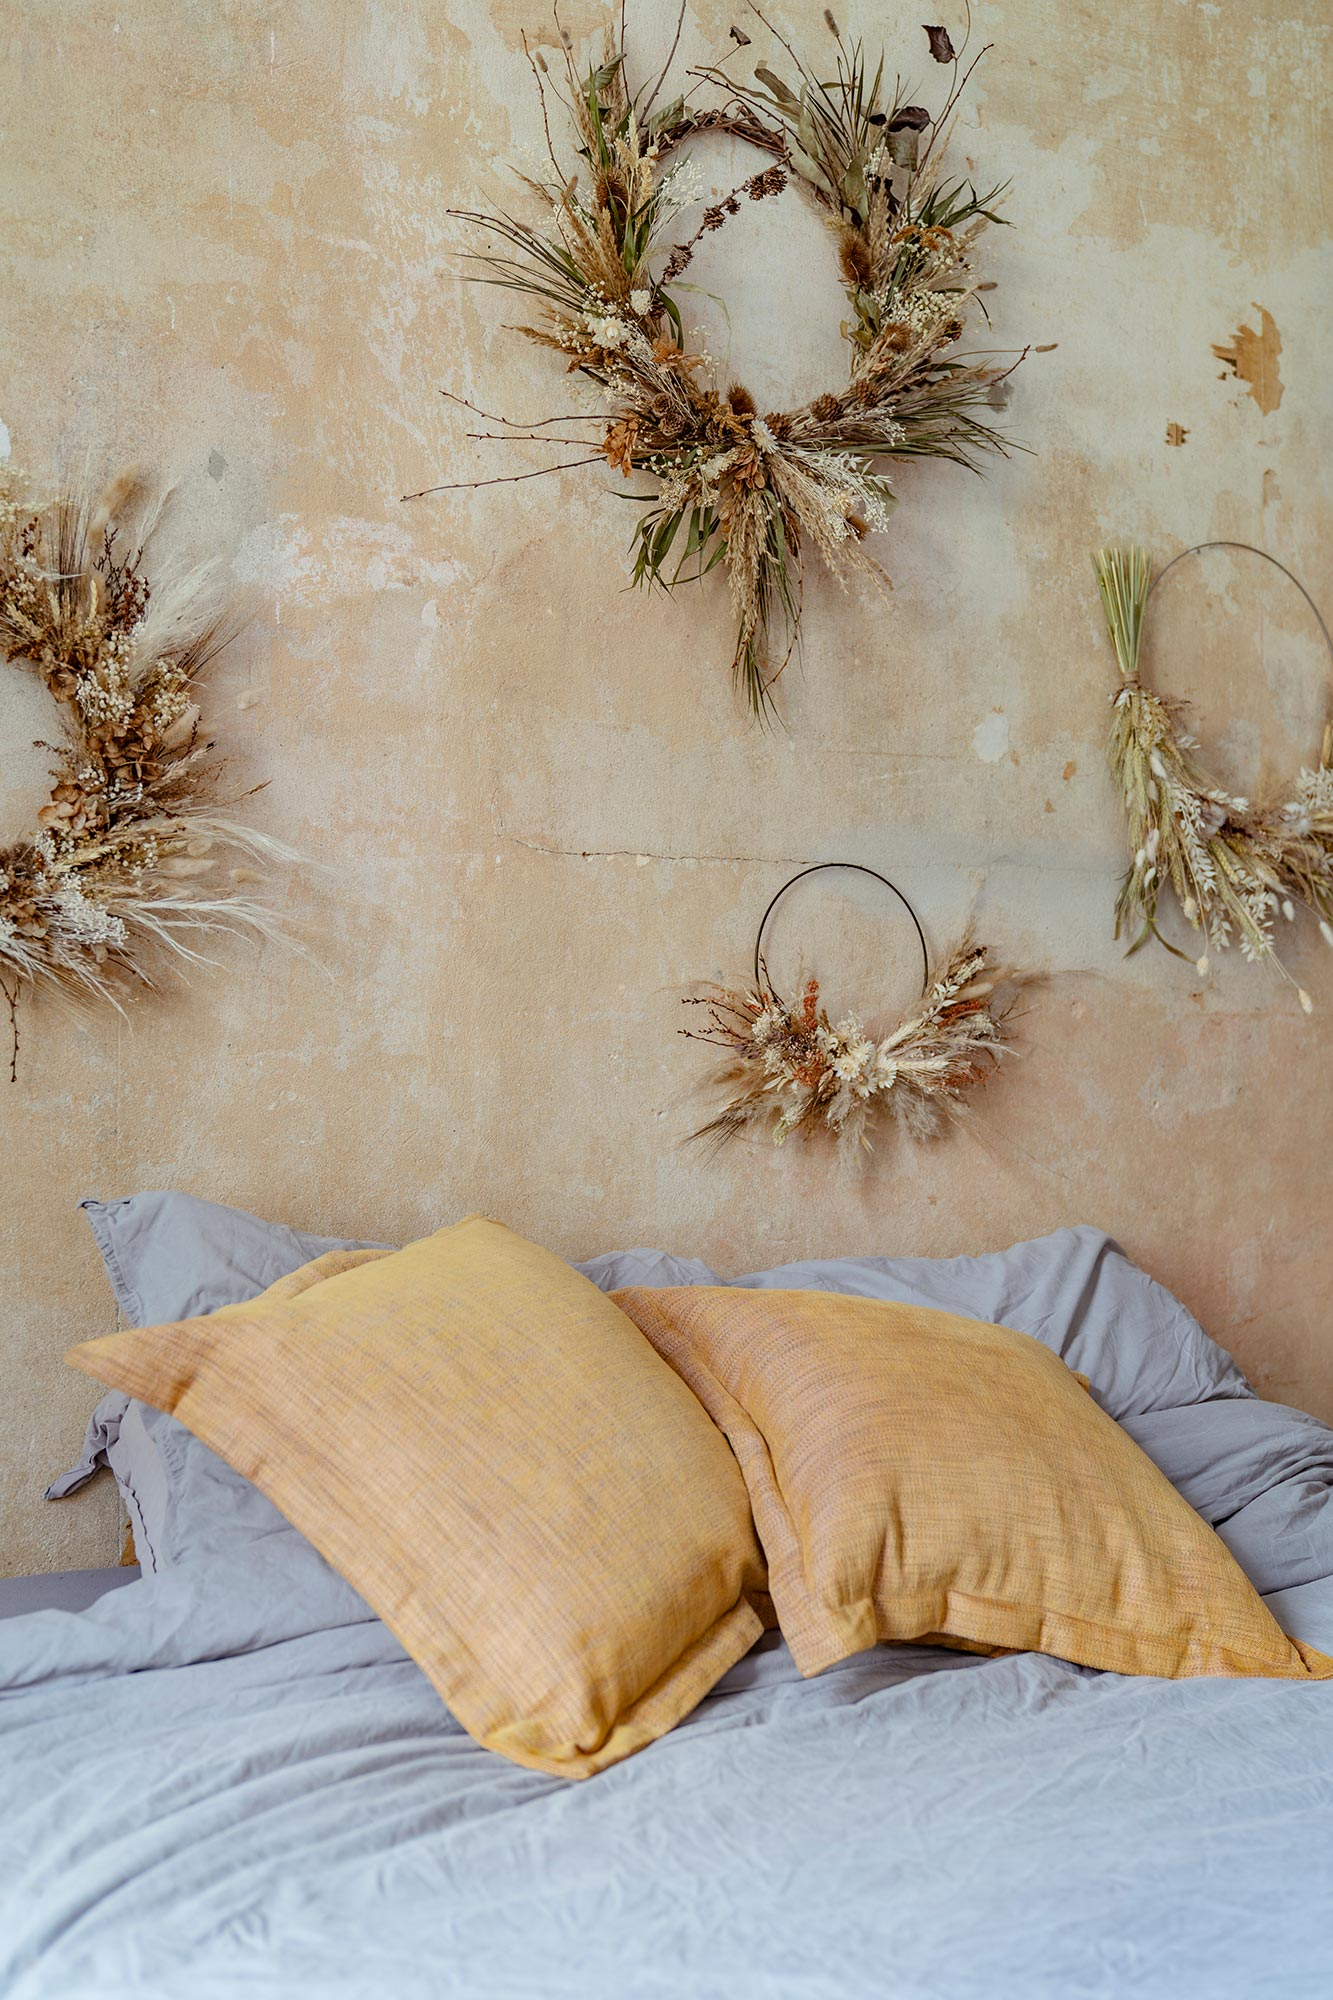 Bedroom with dried flowers